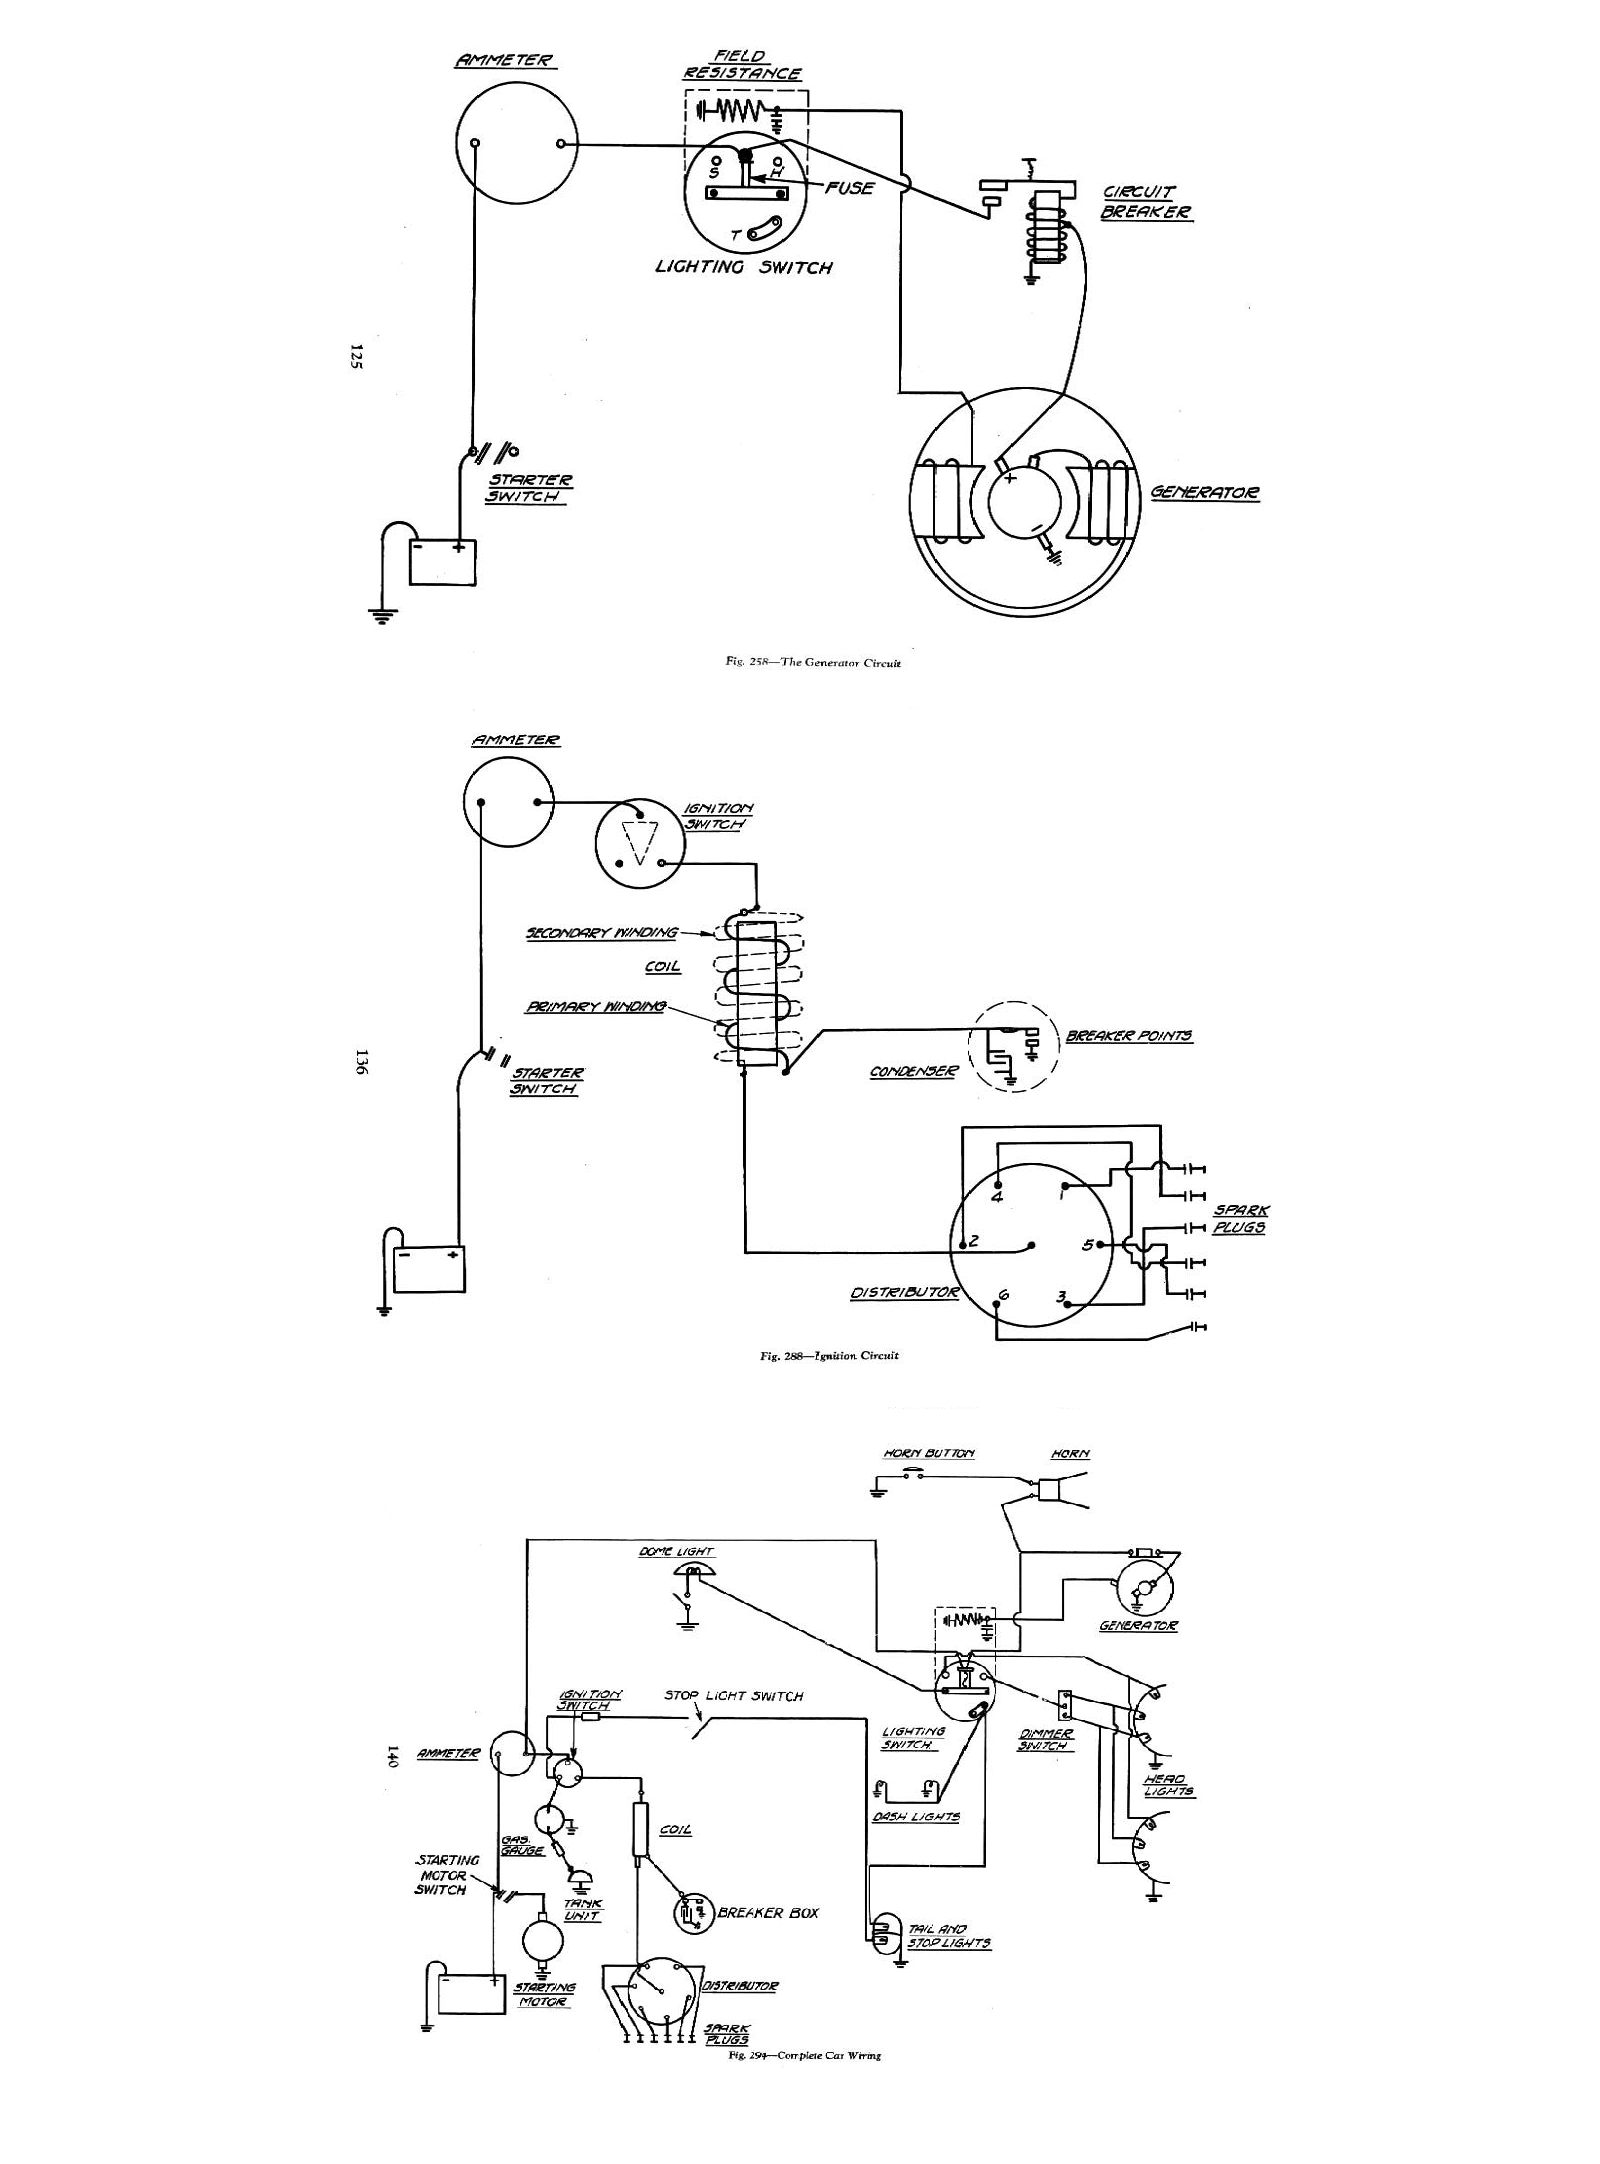 chevy wiring diagrams1934, 1934 wiring diagrams · 1934 general wiring · 1934 generator circuit